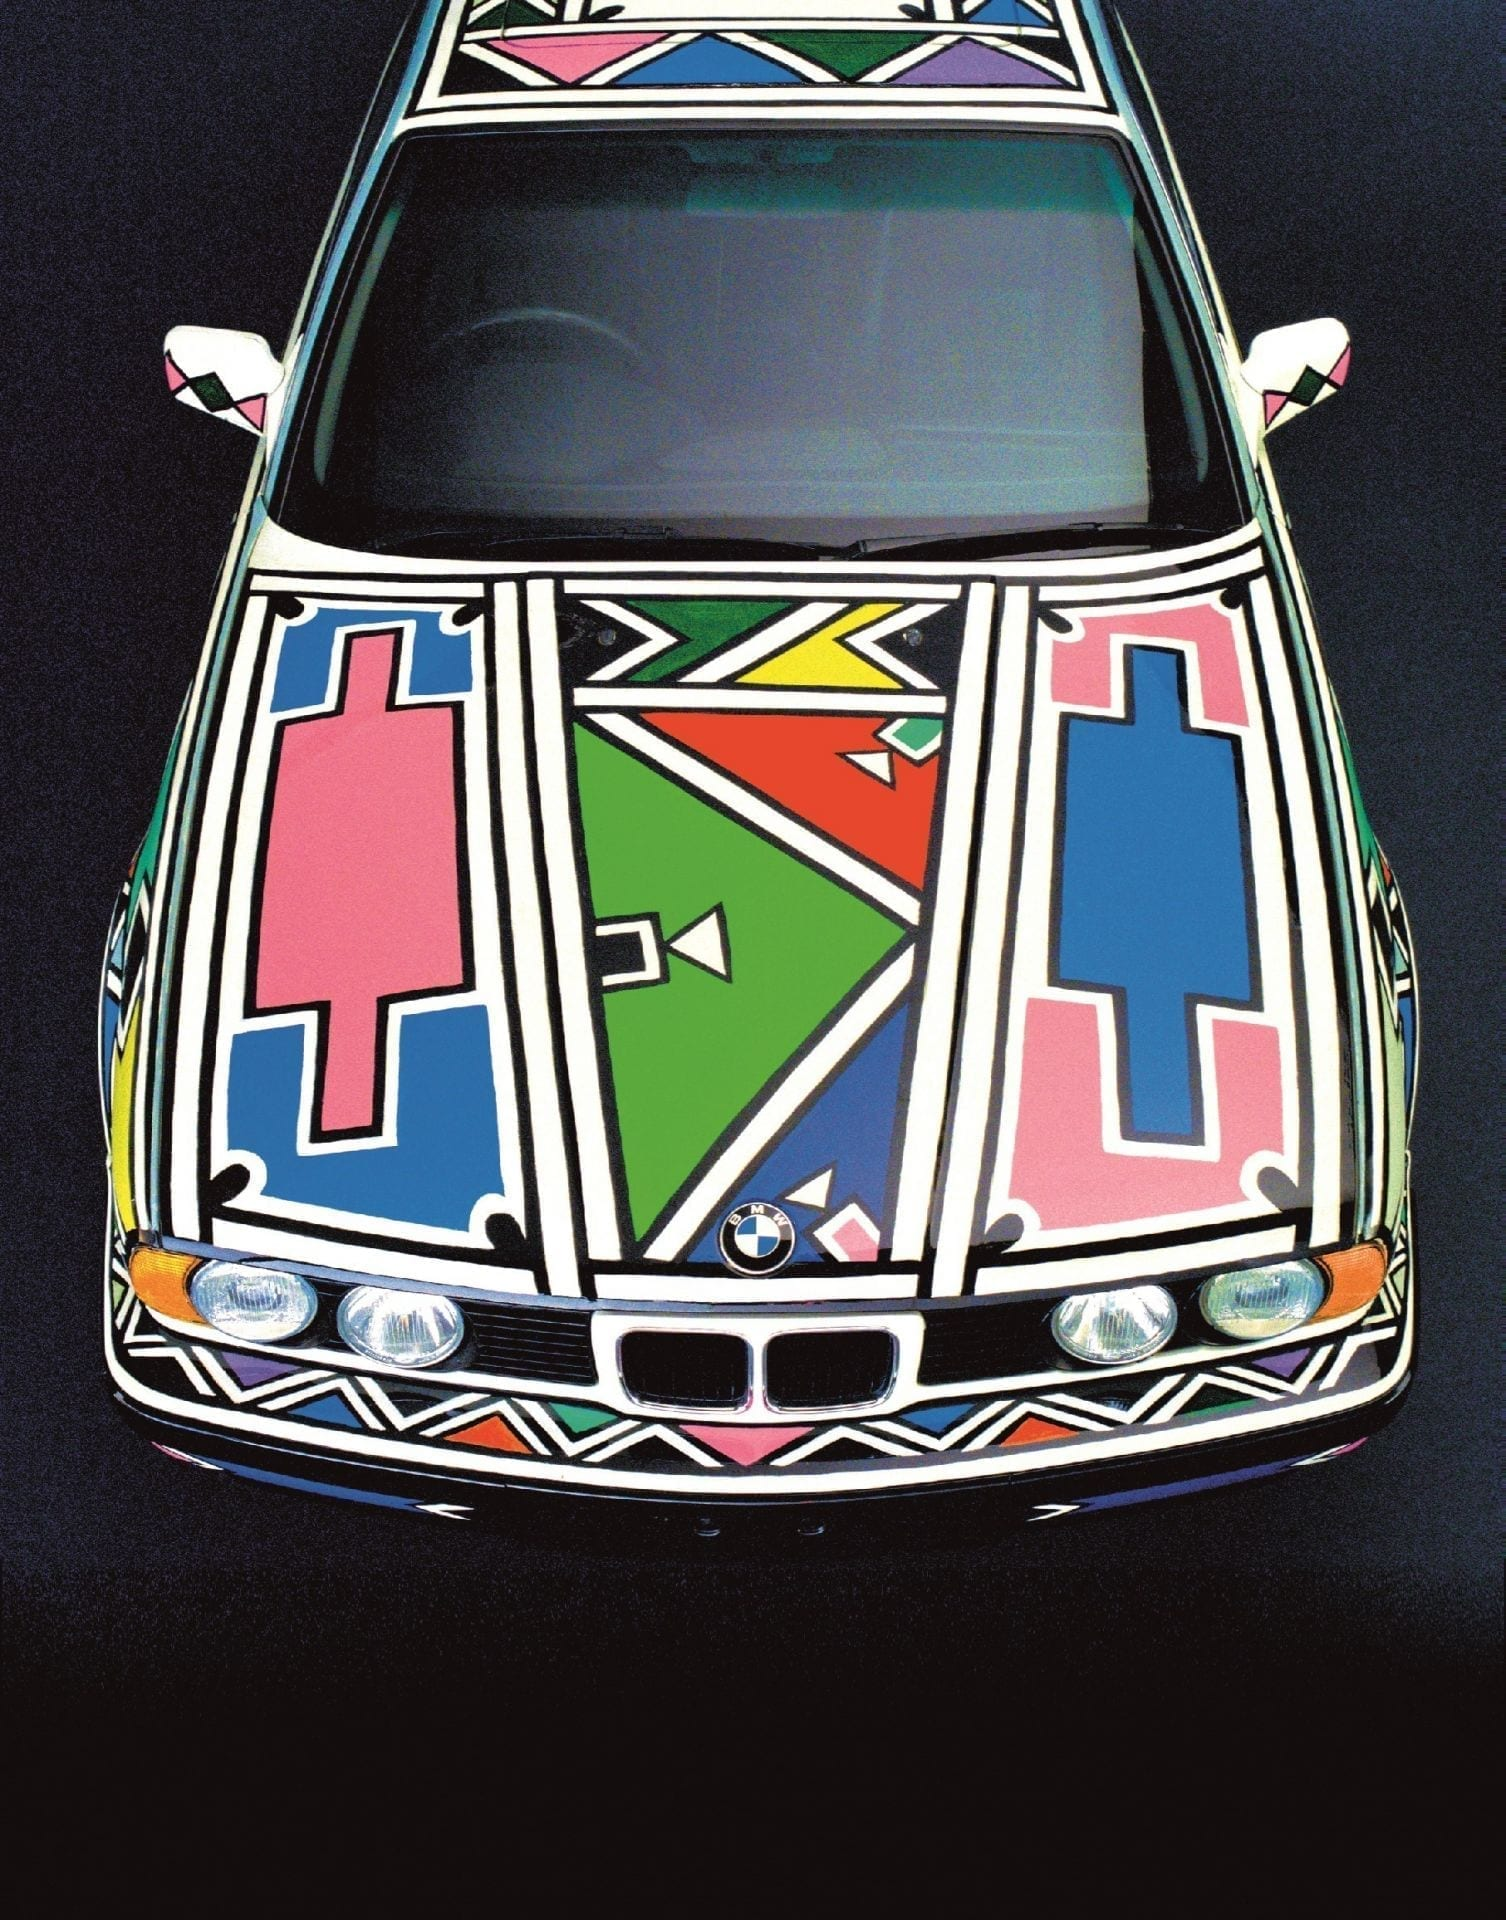 british-museum_bmw-art-car-12-199112902